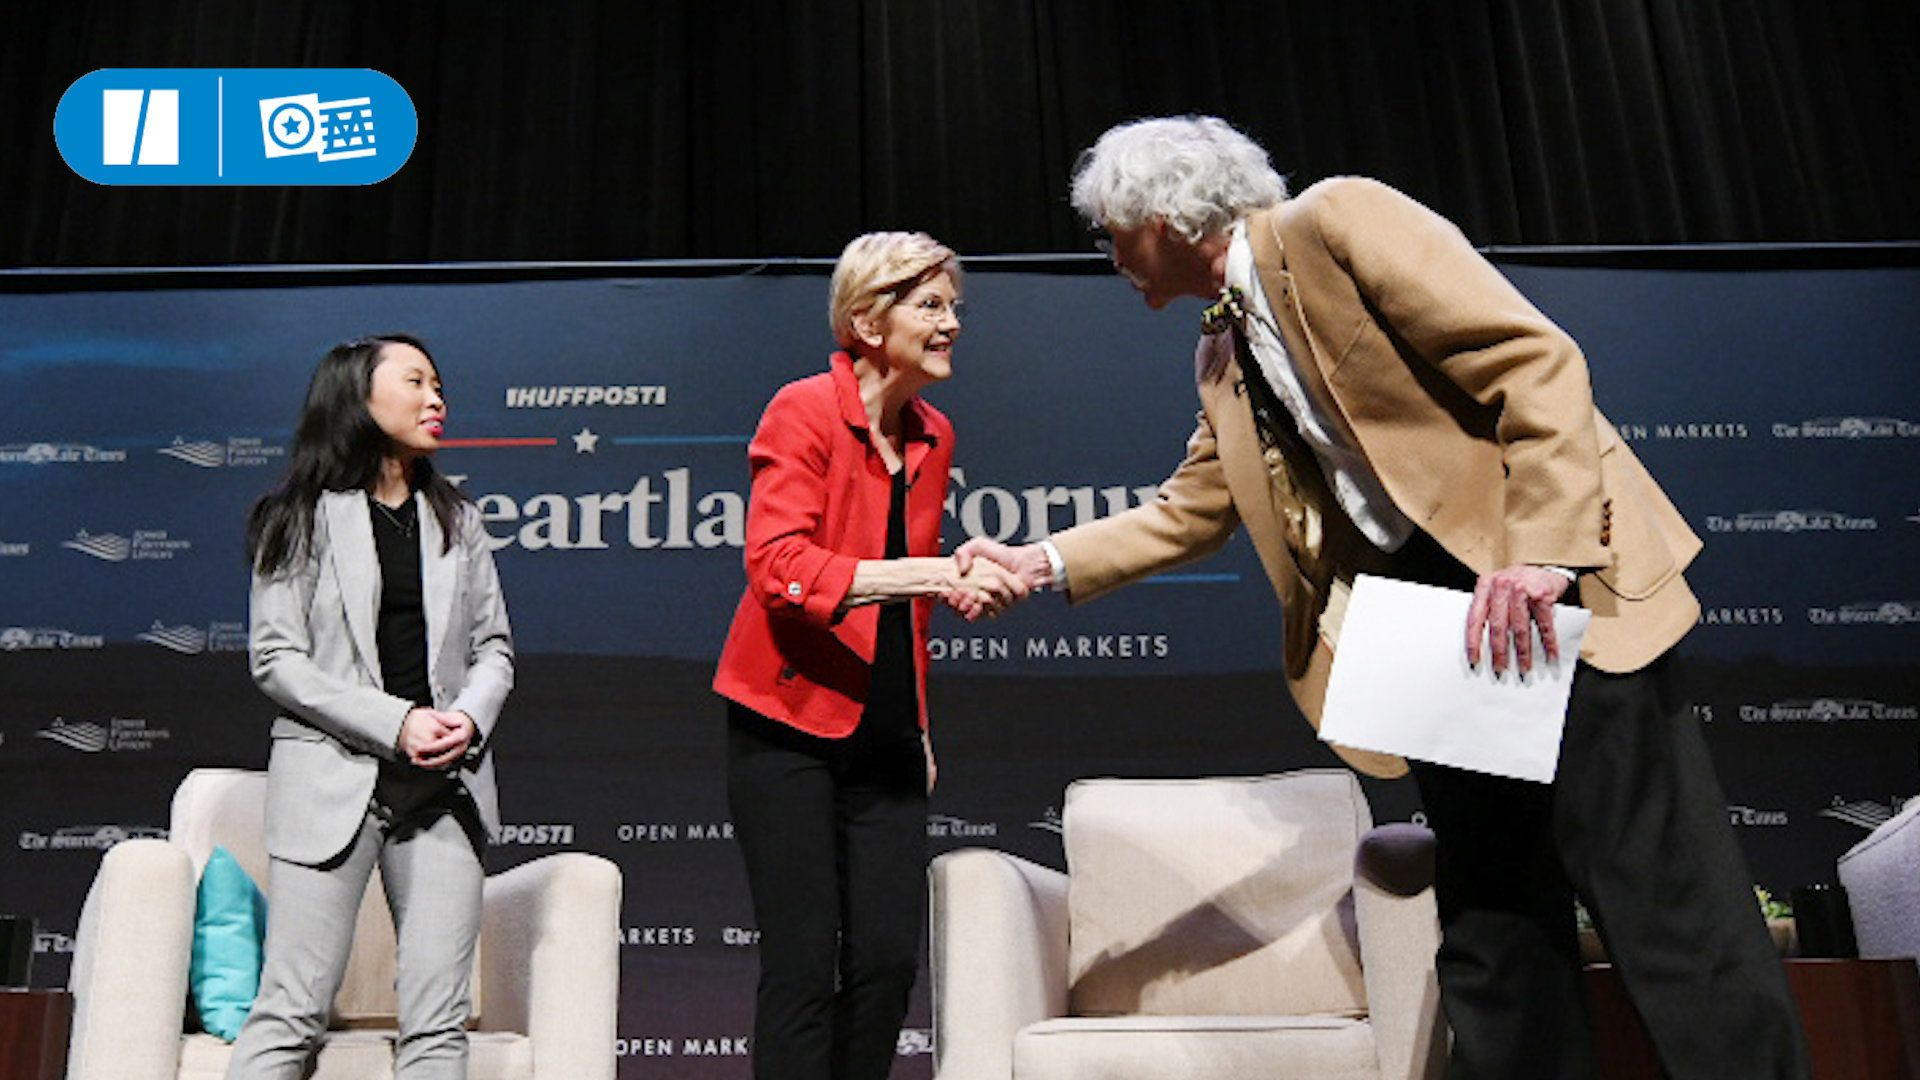 Democratic presidential candidates pitch to rural America at Heartland Forum.